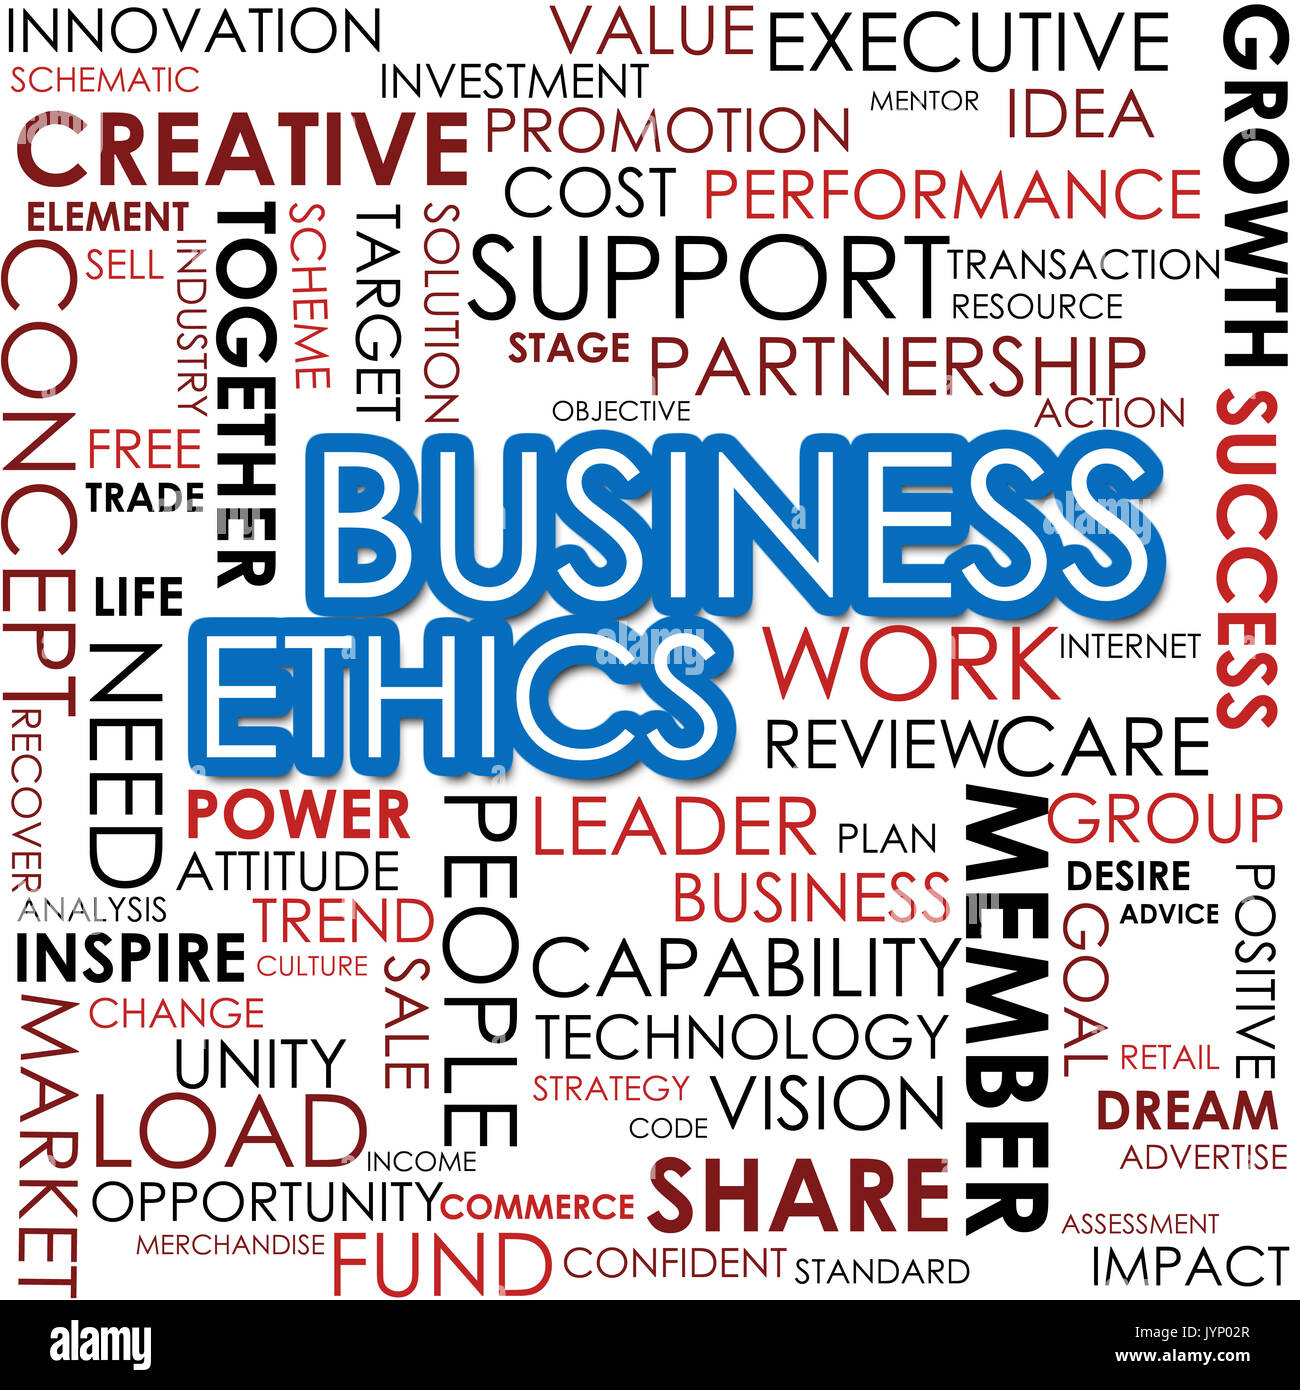 Business ethics word cloud cloud image with hi-res rendered artwork that could be used for any graphic design. - Stock Image